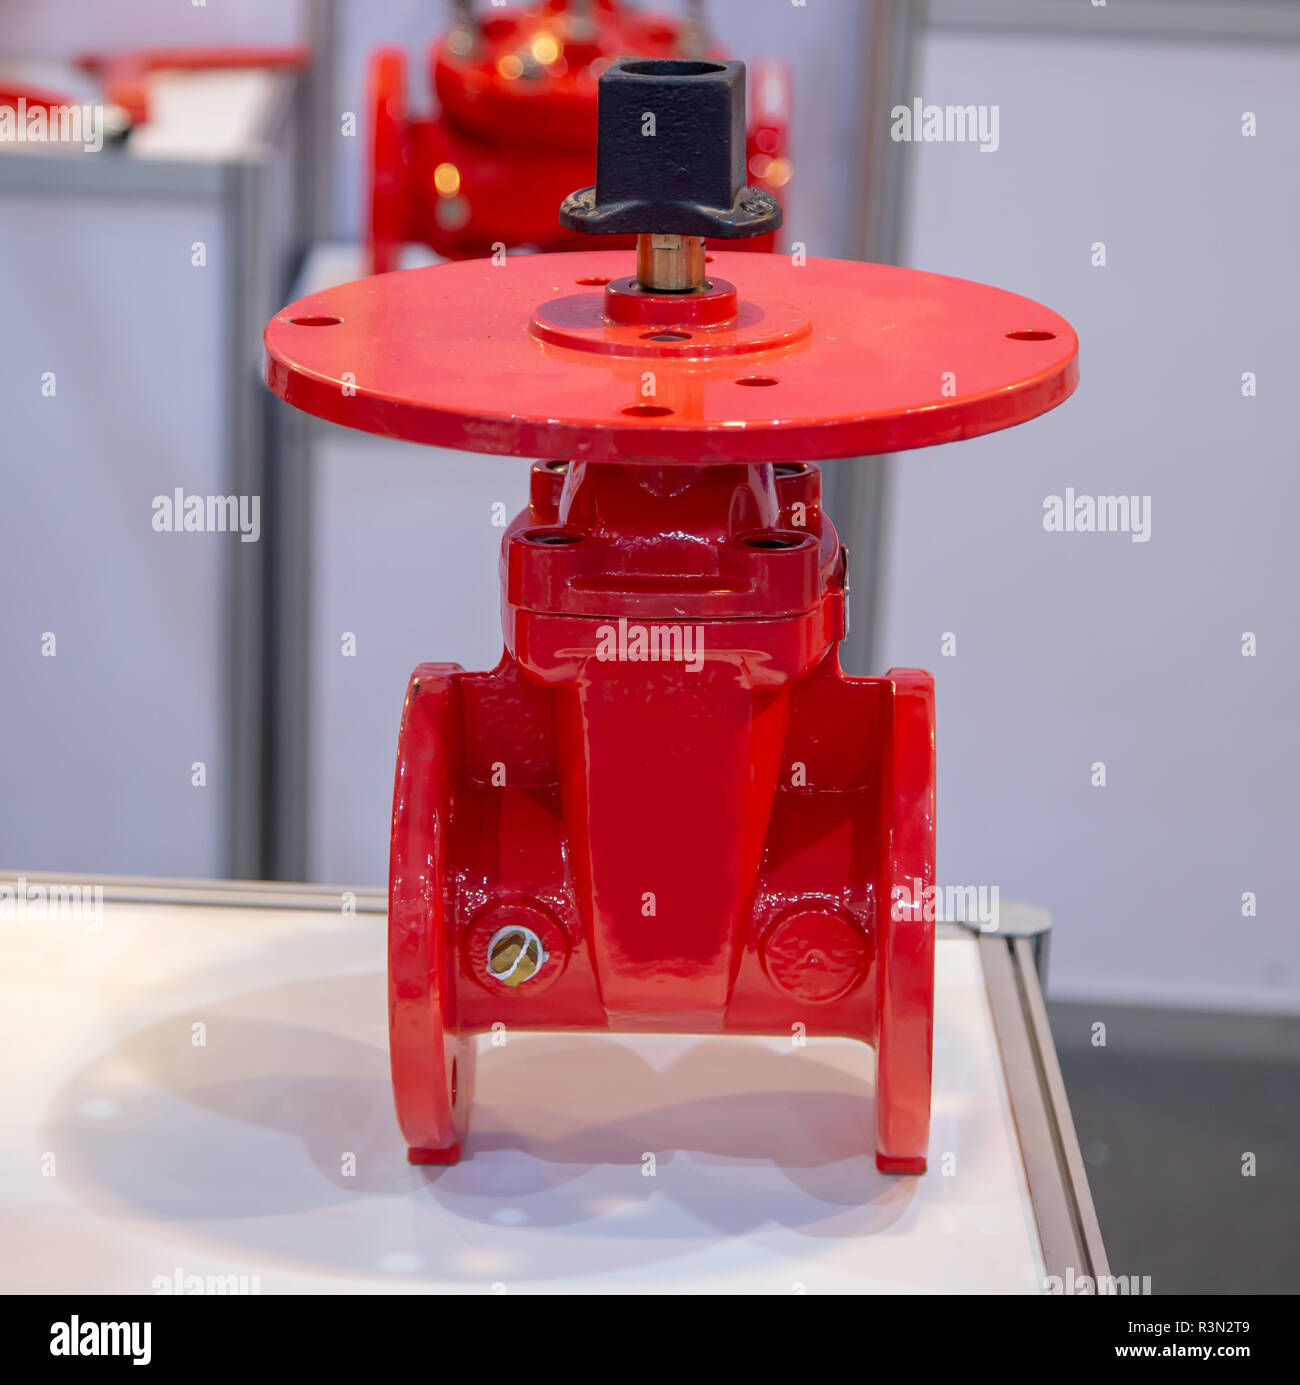 Non Rising Stem PIV Gate Valve Flange Connection - Stock Image